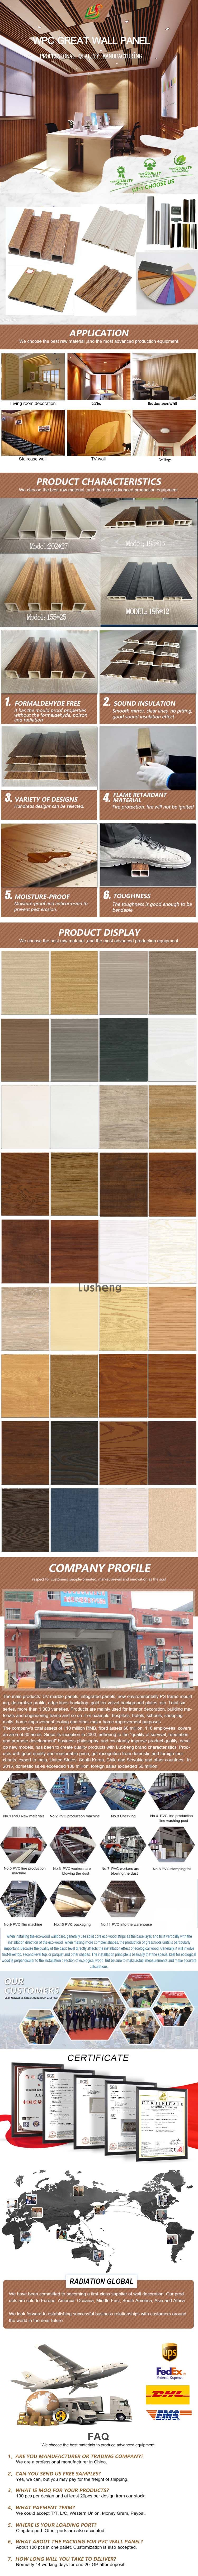 New decoration material wood grain surface decorative wood wall covering panels wpc panels for wall (图1)